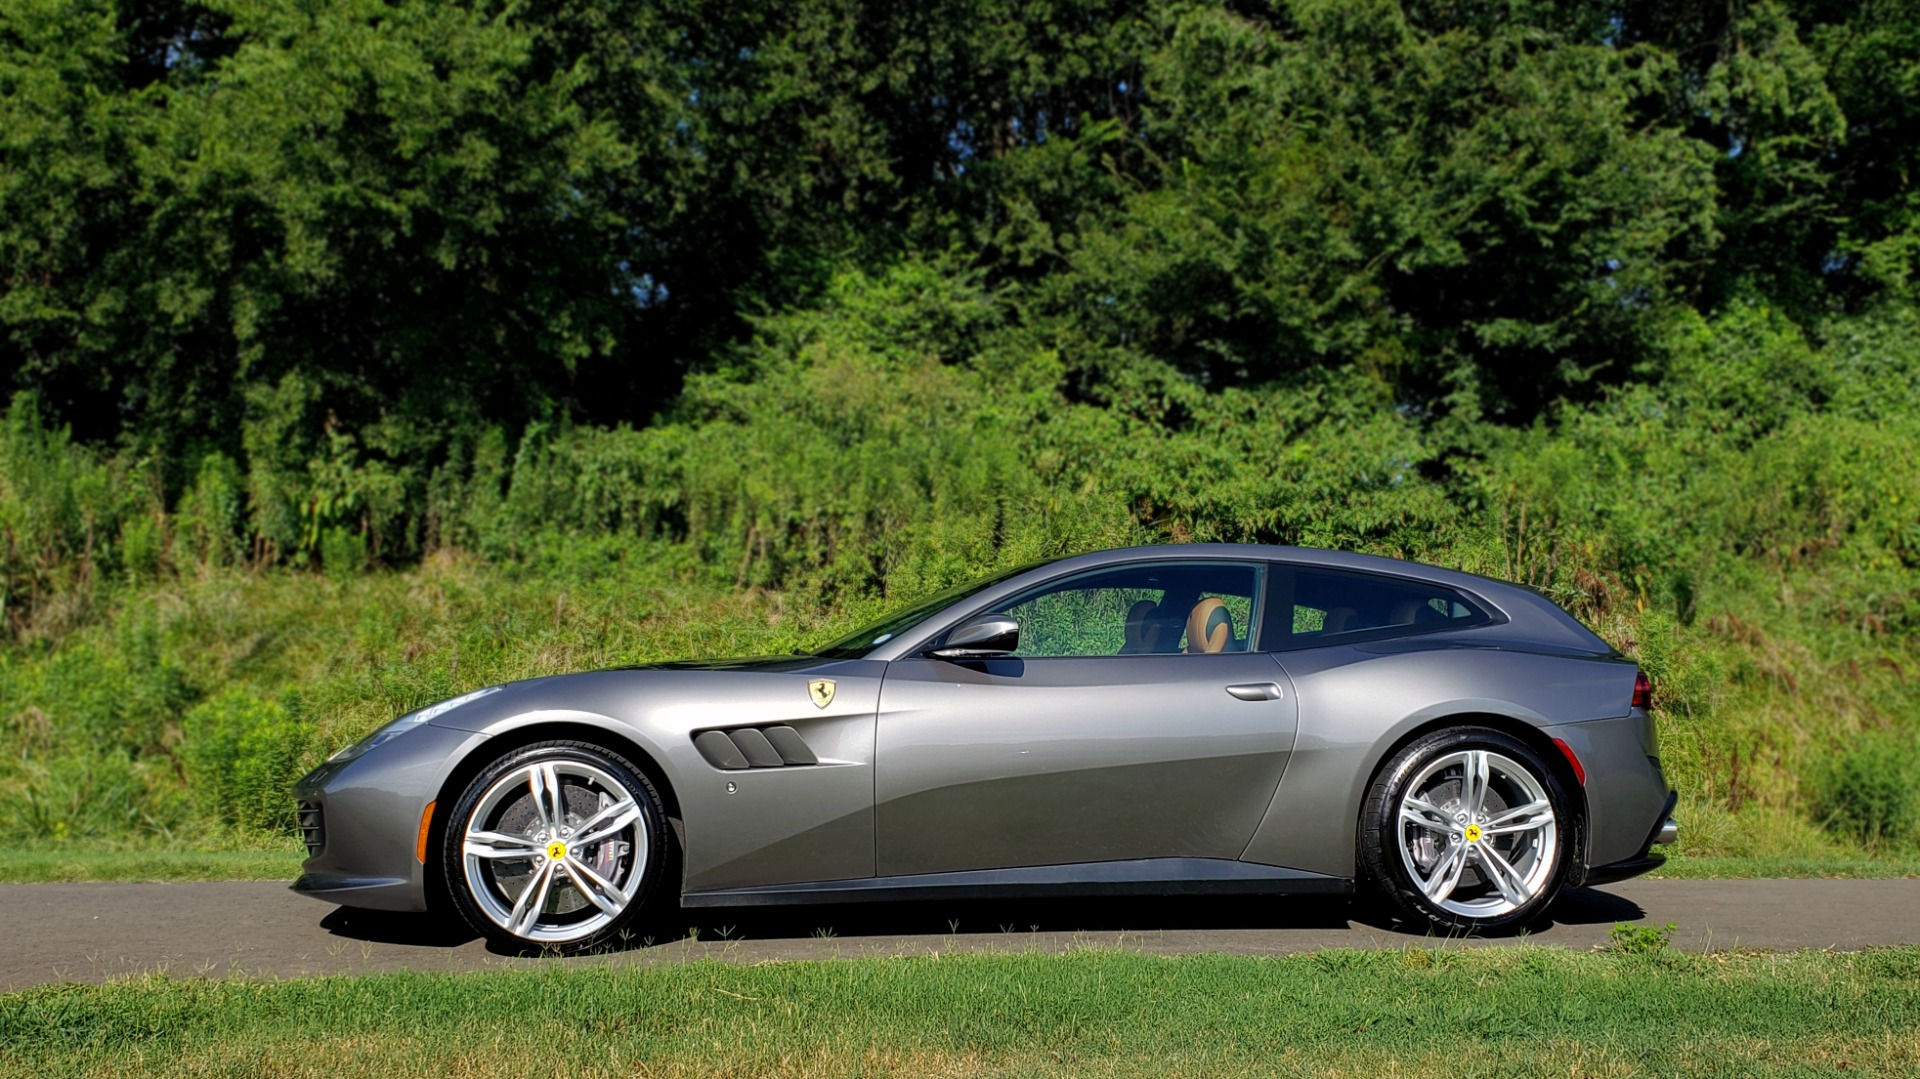 Used 2017 Ferrari GTC4 LUSSO AWD / PANO-ROOF / APPLE CAR PLAY / SUSP LIFT / JBL SOUND for sale $188,999 at Formula Imports in Charlotte NC 28227 5